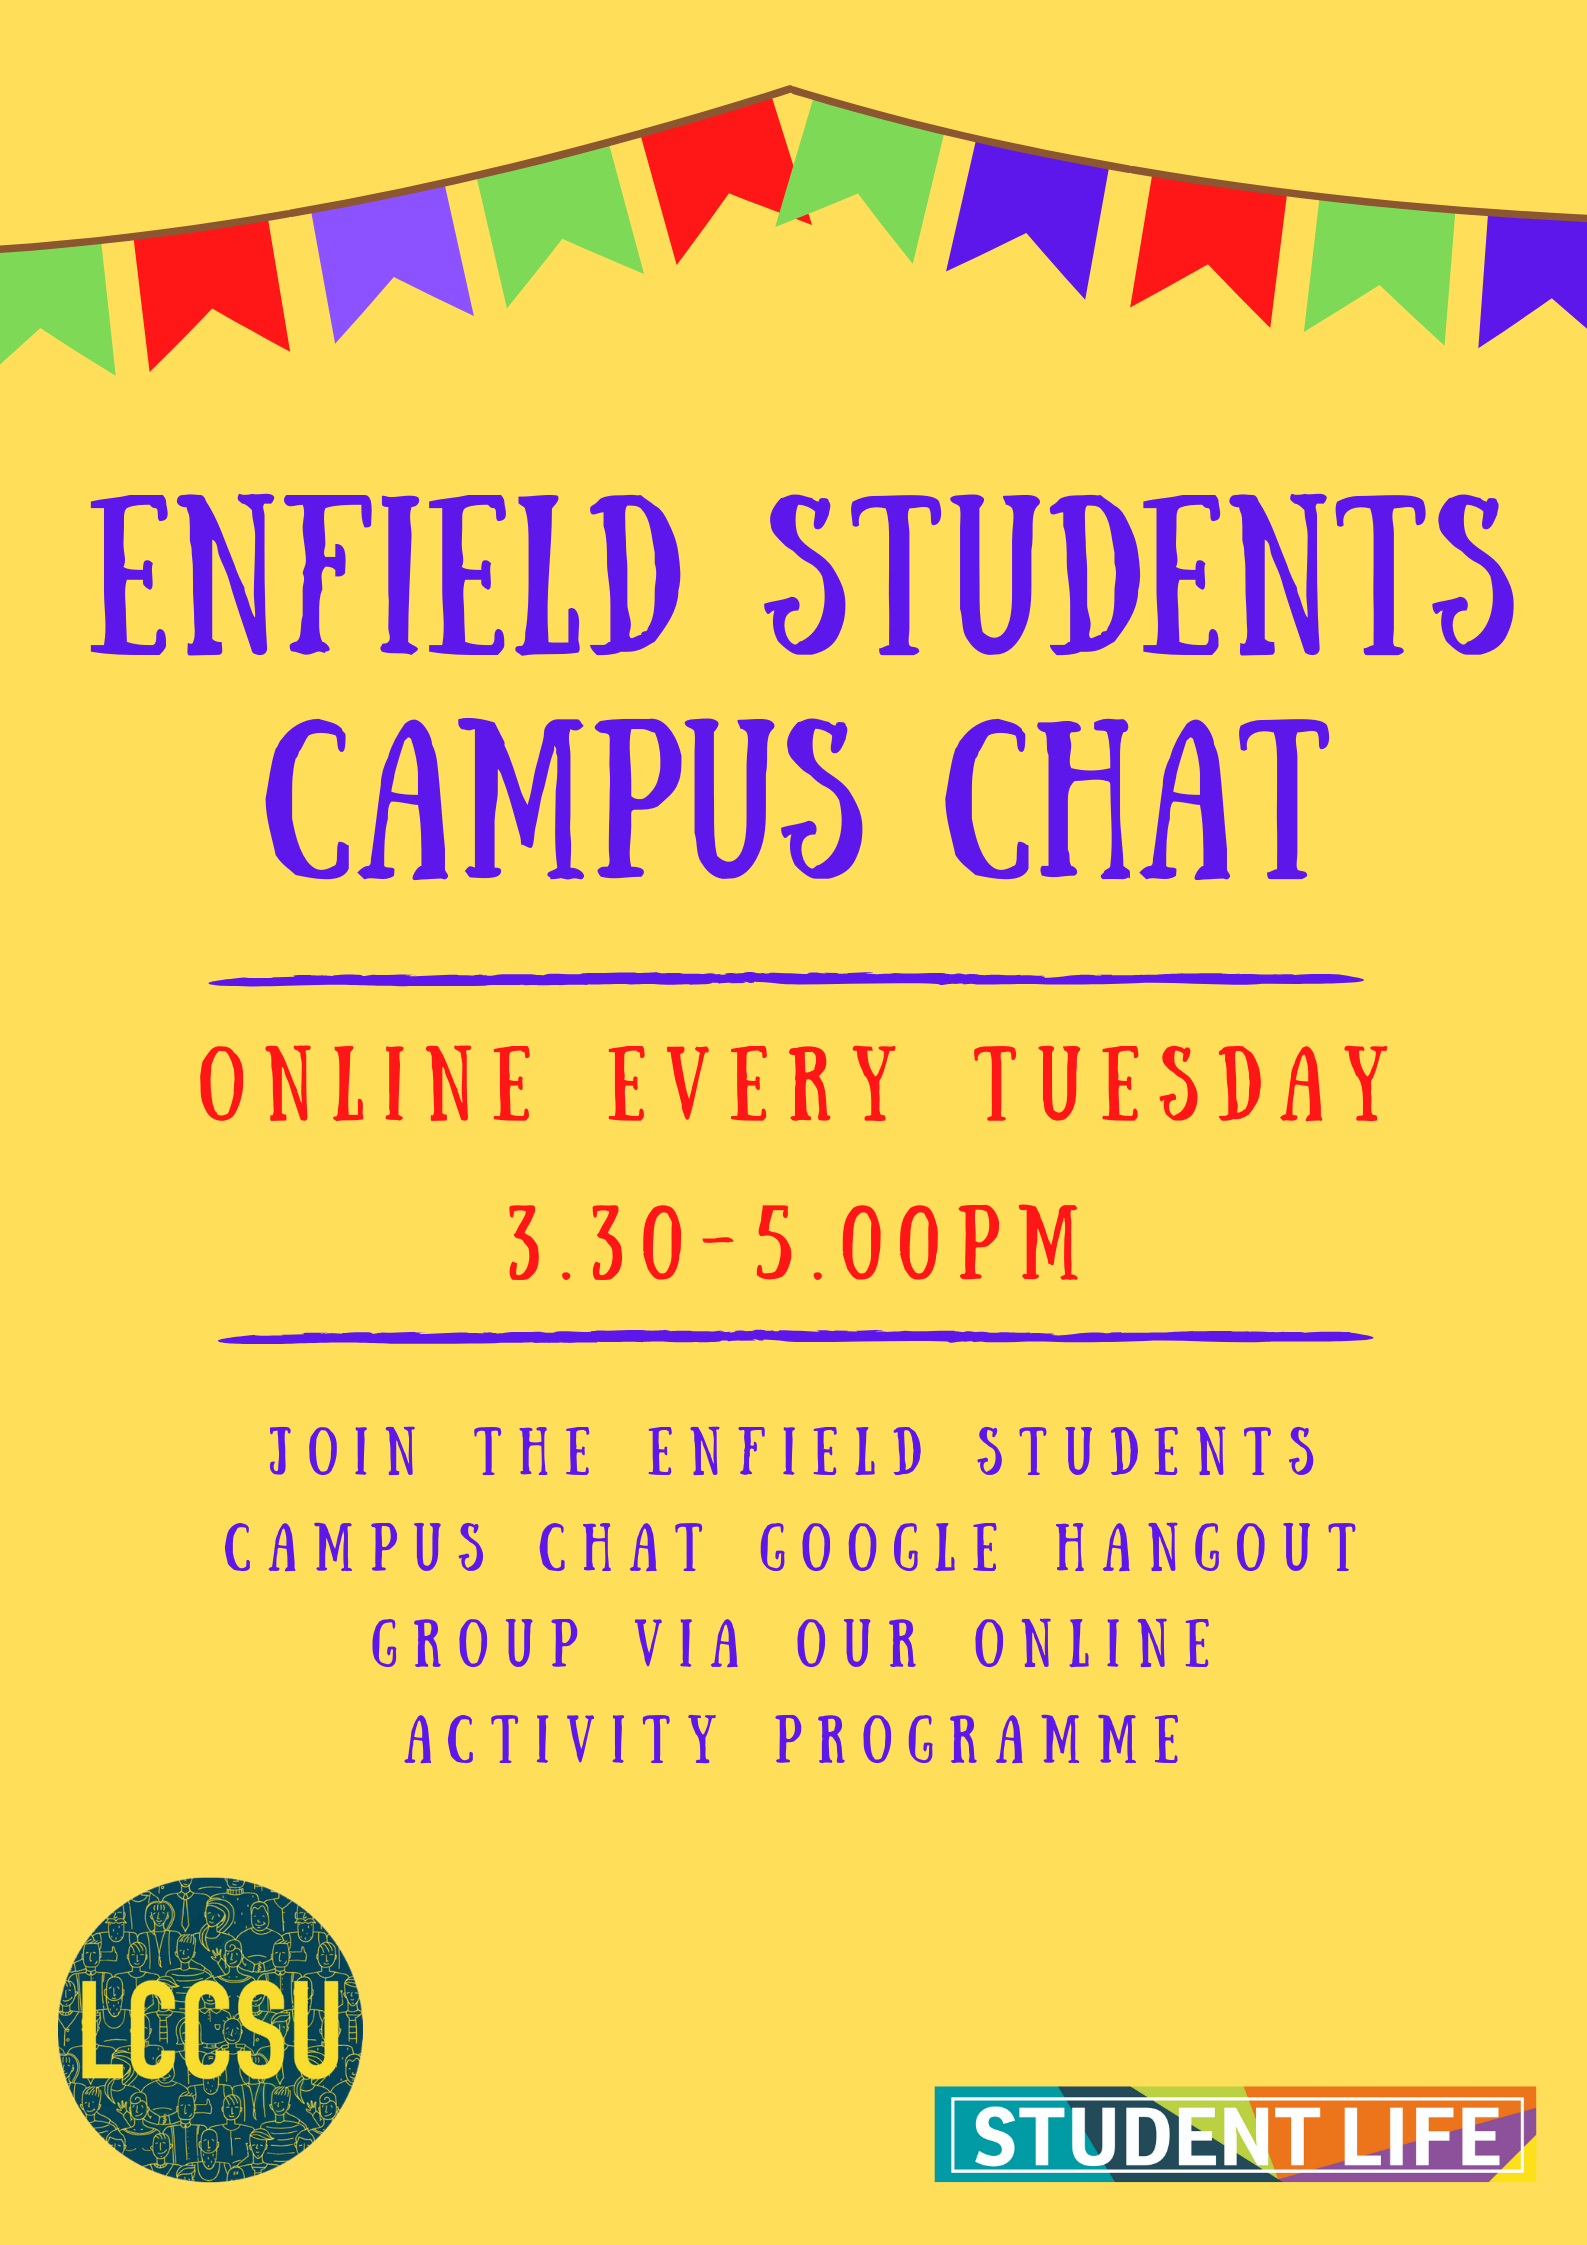 Enfield students campus chat website